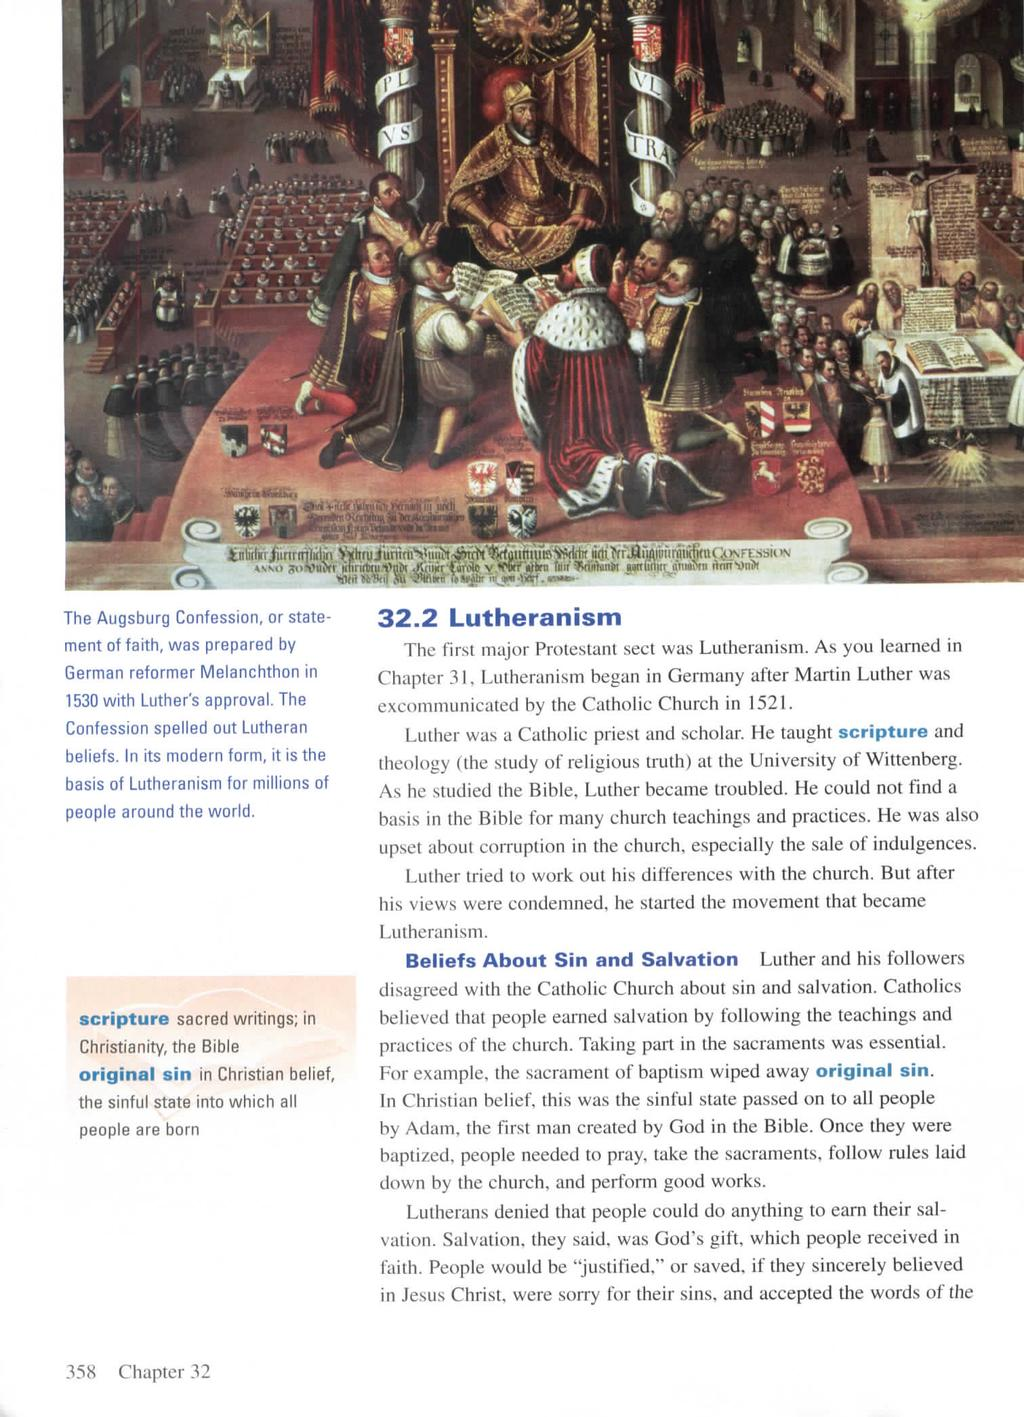 The Spread and Impact of the Reformation - PDF